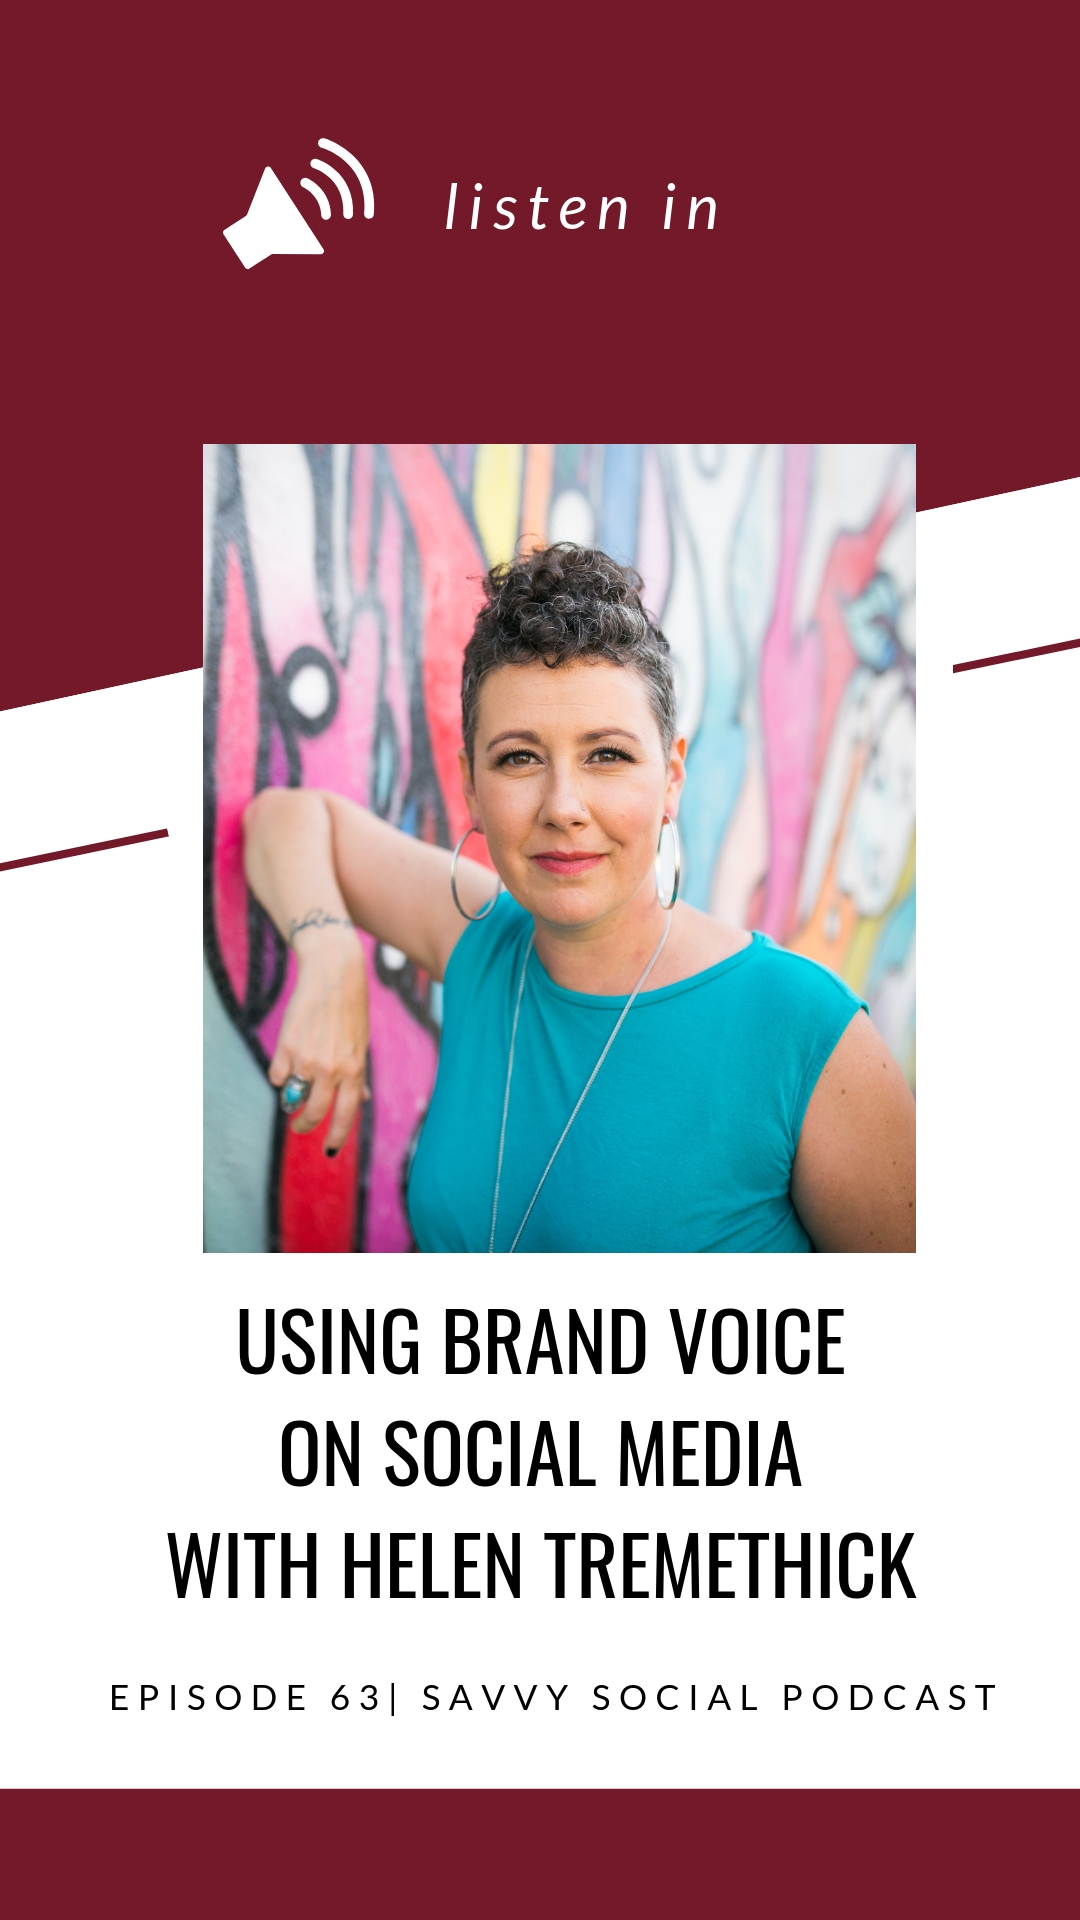 Before anyone will actually buy your services, donate to your cause, or subscribe to your show or newsletter, they need to know, like, and trust you. Developing this kind of connection requires a strong brand voice and a clear understanding of your audience. Helen Tremethick talks with me about how to find your brand voice, using your brand voice on social media.